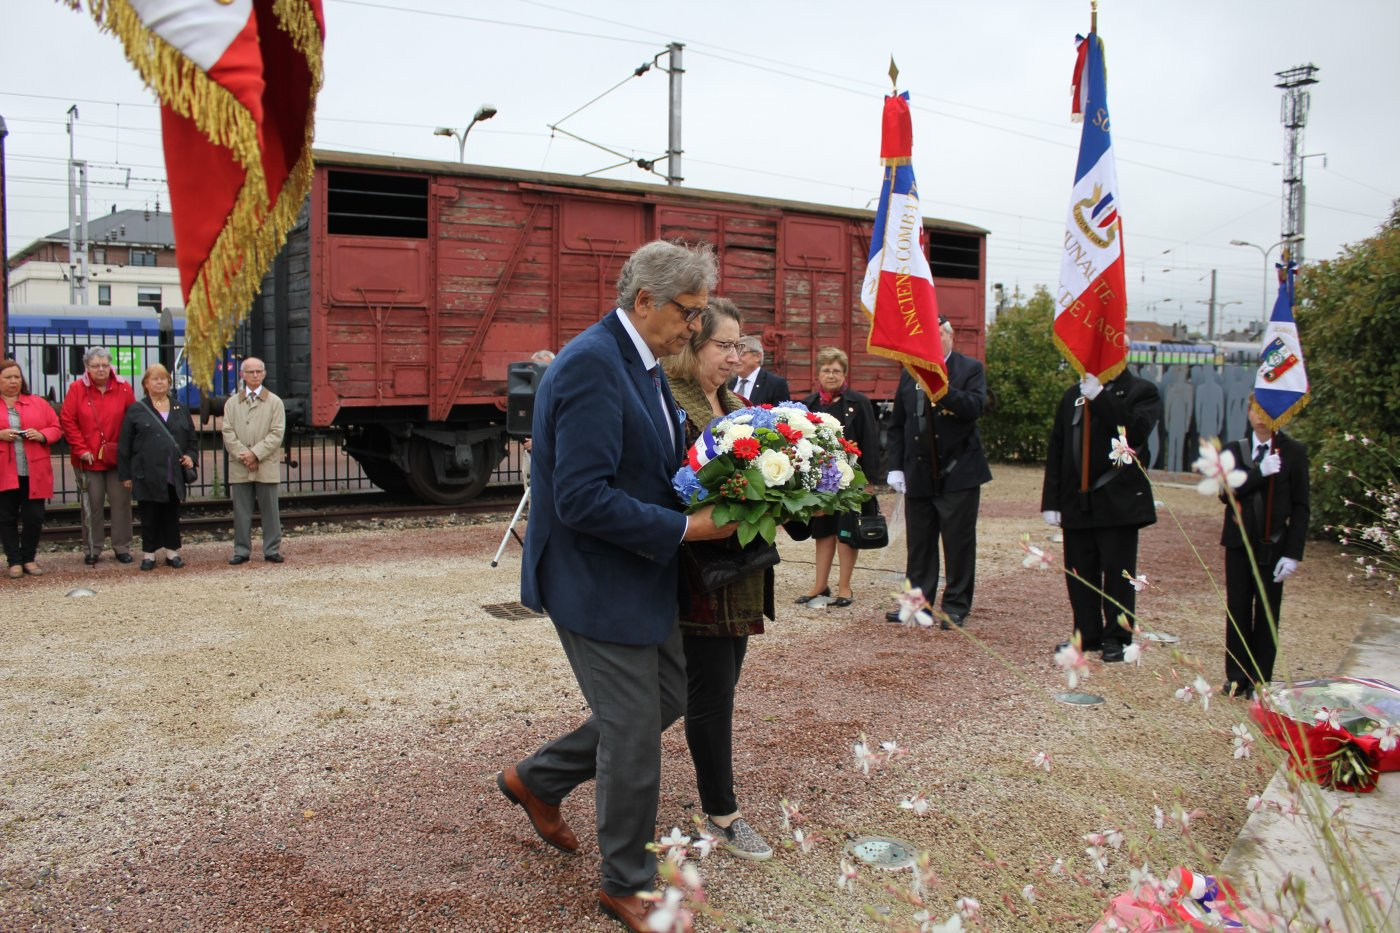 memorial-du-wagon-de-deportation-ceremonie-du-train-de-mort-2-juillet-2017